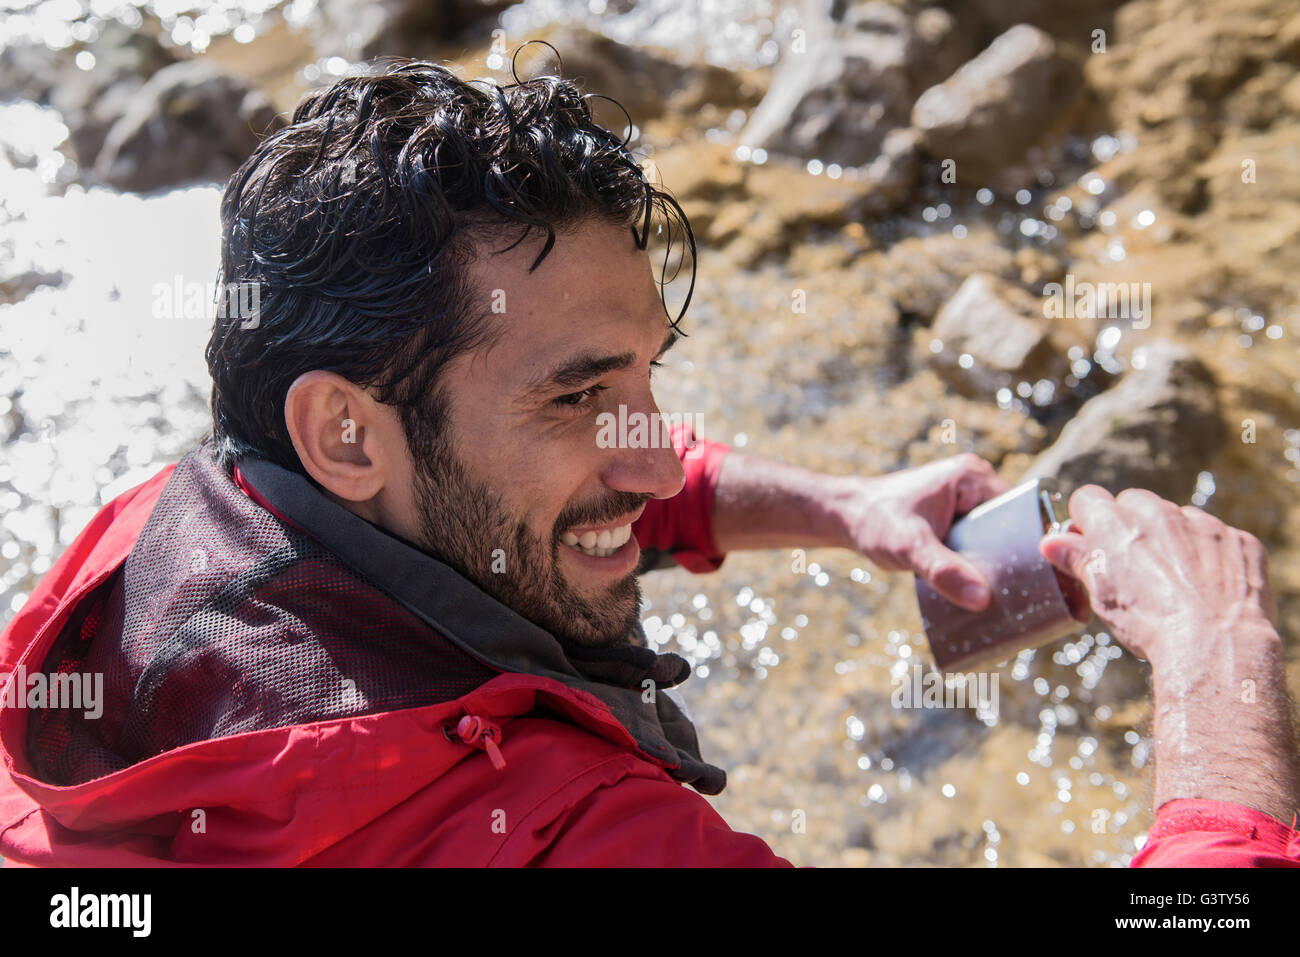 A mountaineer filling his water bottle from a mountain stream. - Stock Image